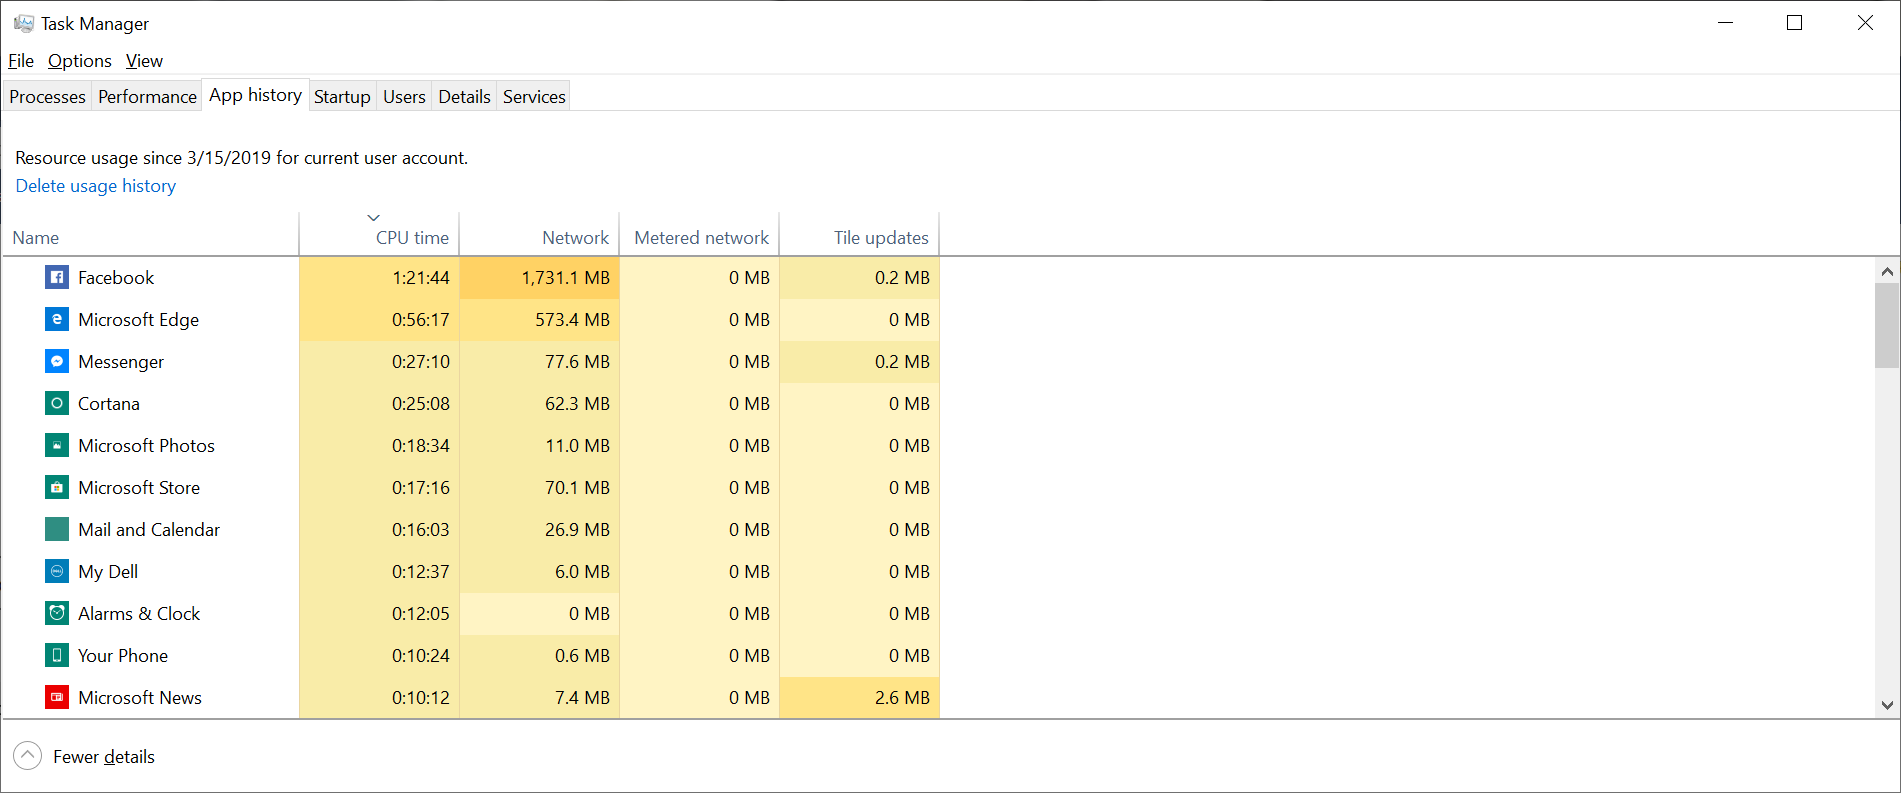 Ridiculous amount of CPU used by Microsoft Photos and Store d65bb38e-3be4-4498-ac8f-3b868363f04b?upload=true.png